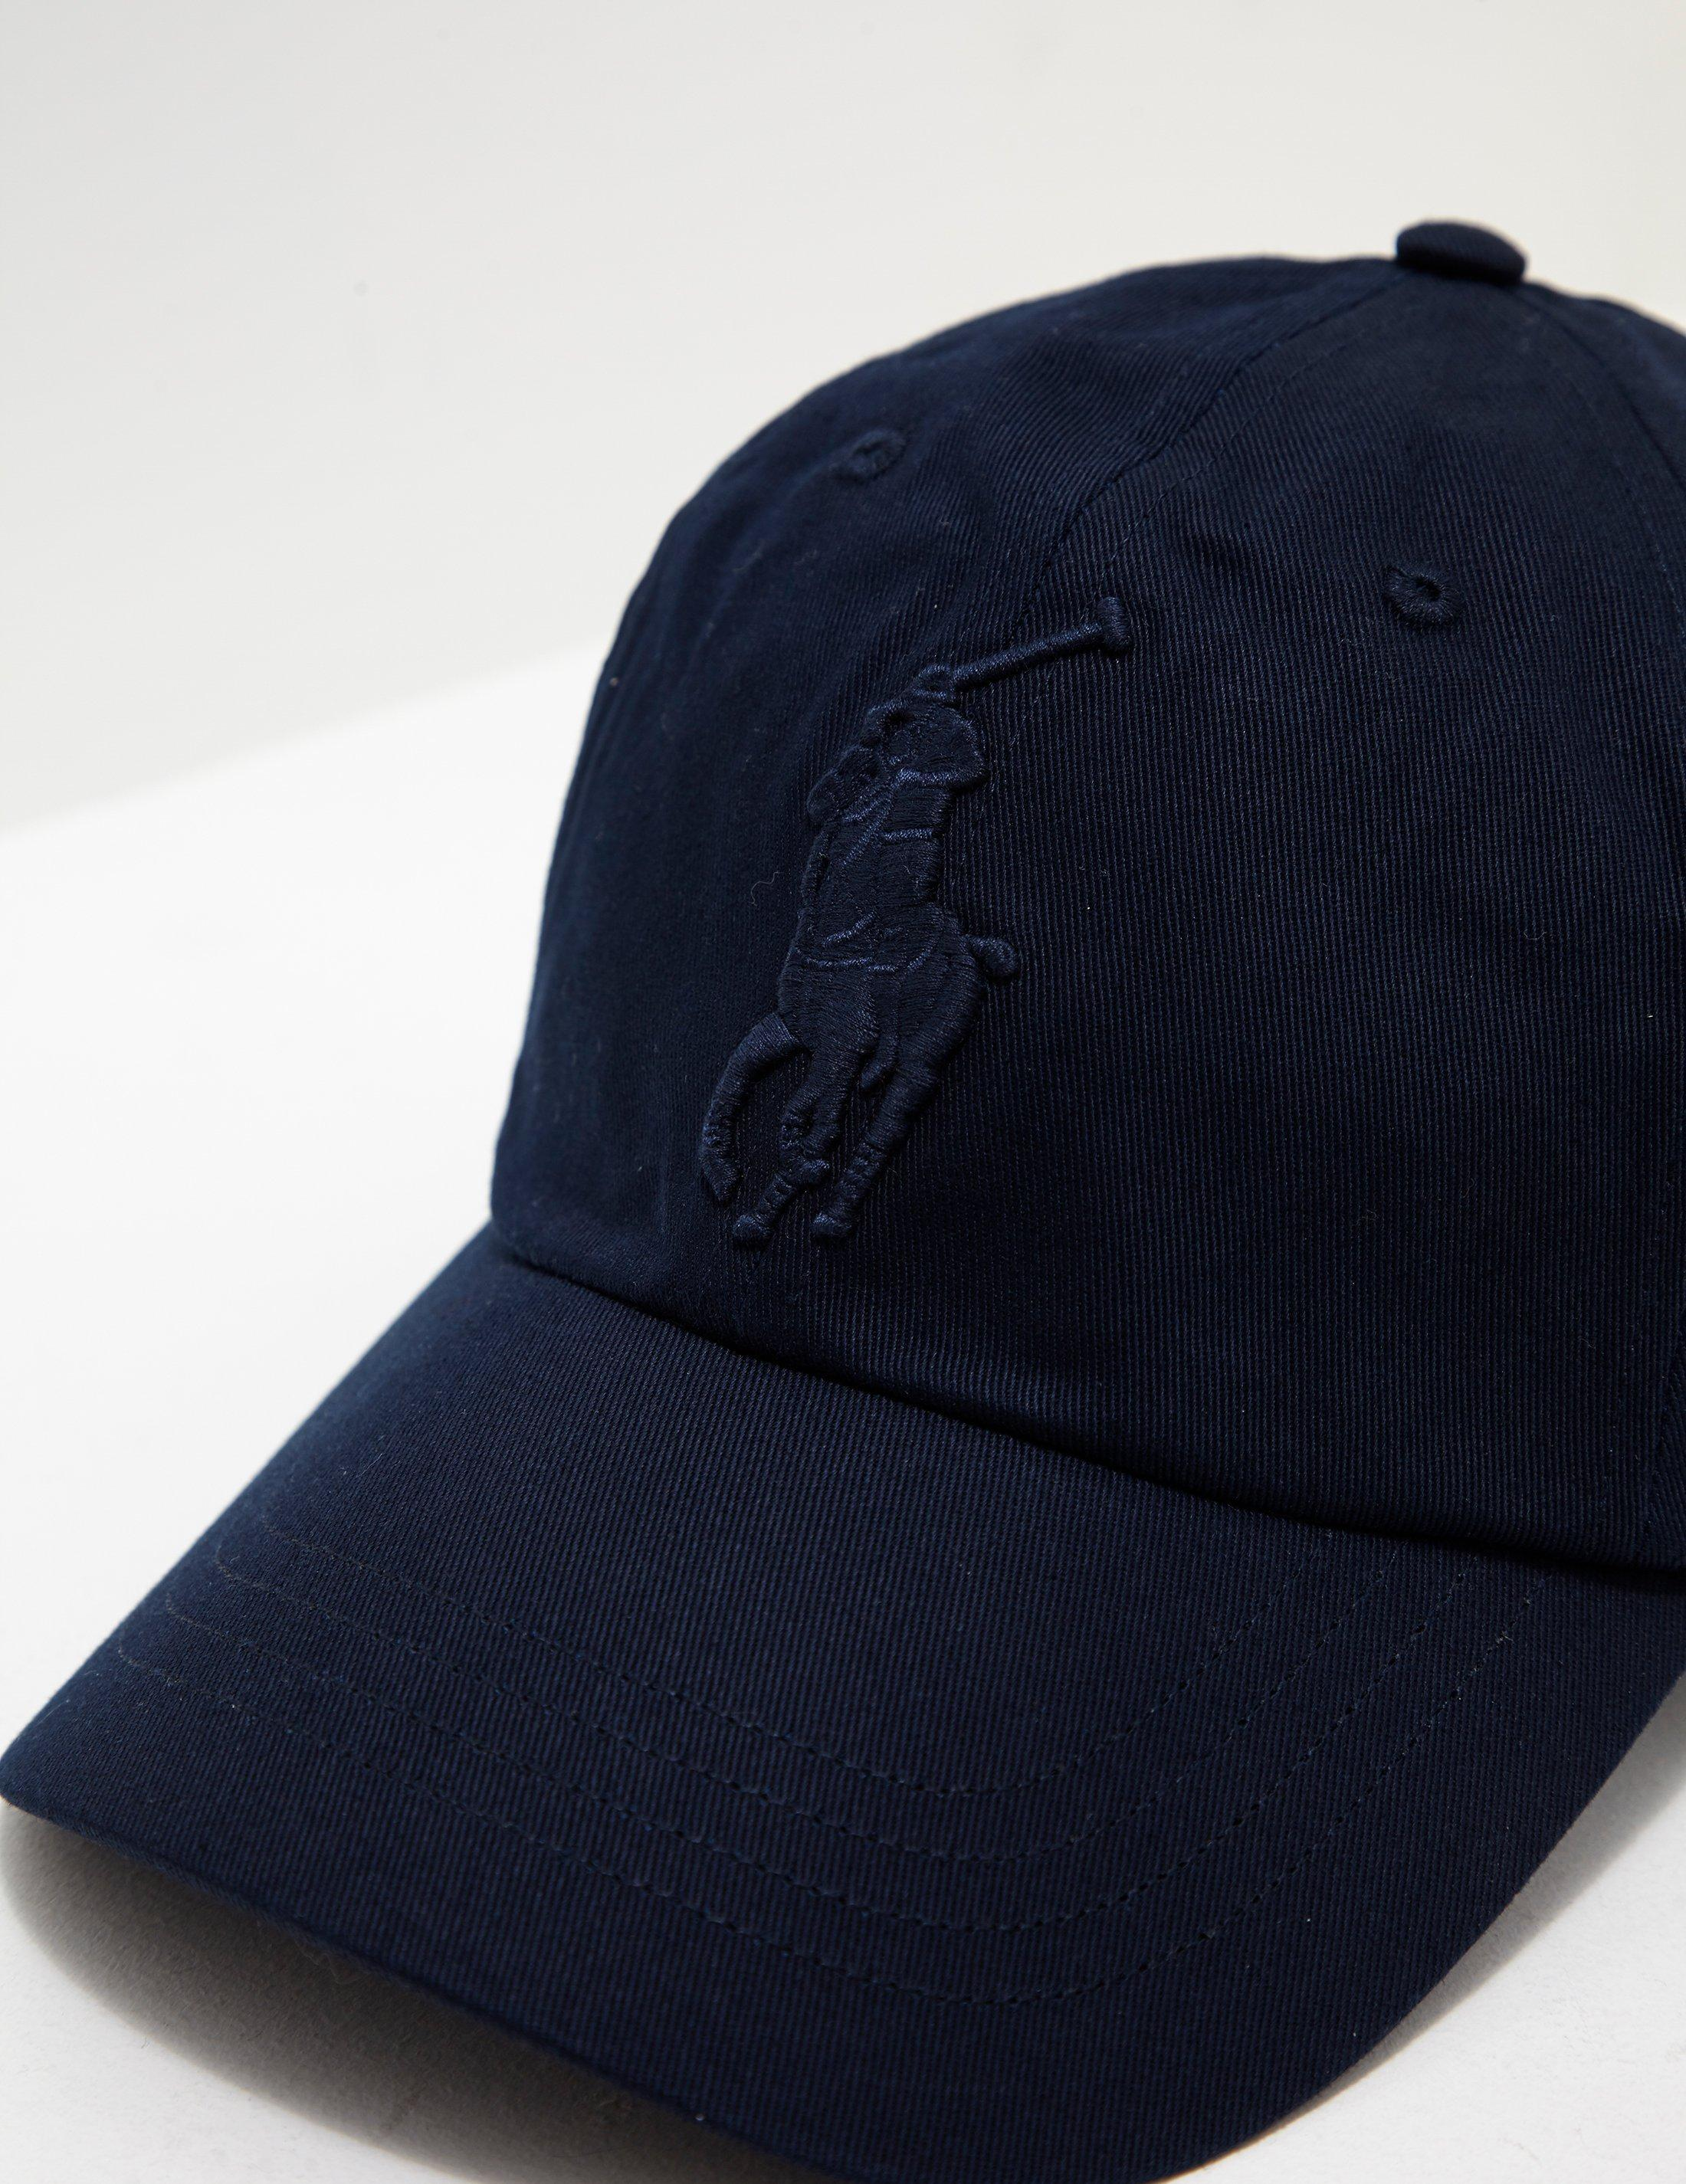 a1a82c2998caf8 Polo Ralph Lauren Mens Large Embroidered Cap Navy Blue in Blue for Men -  Lyst